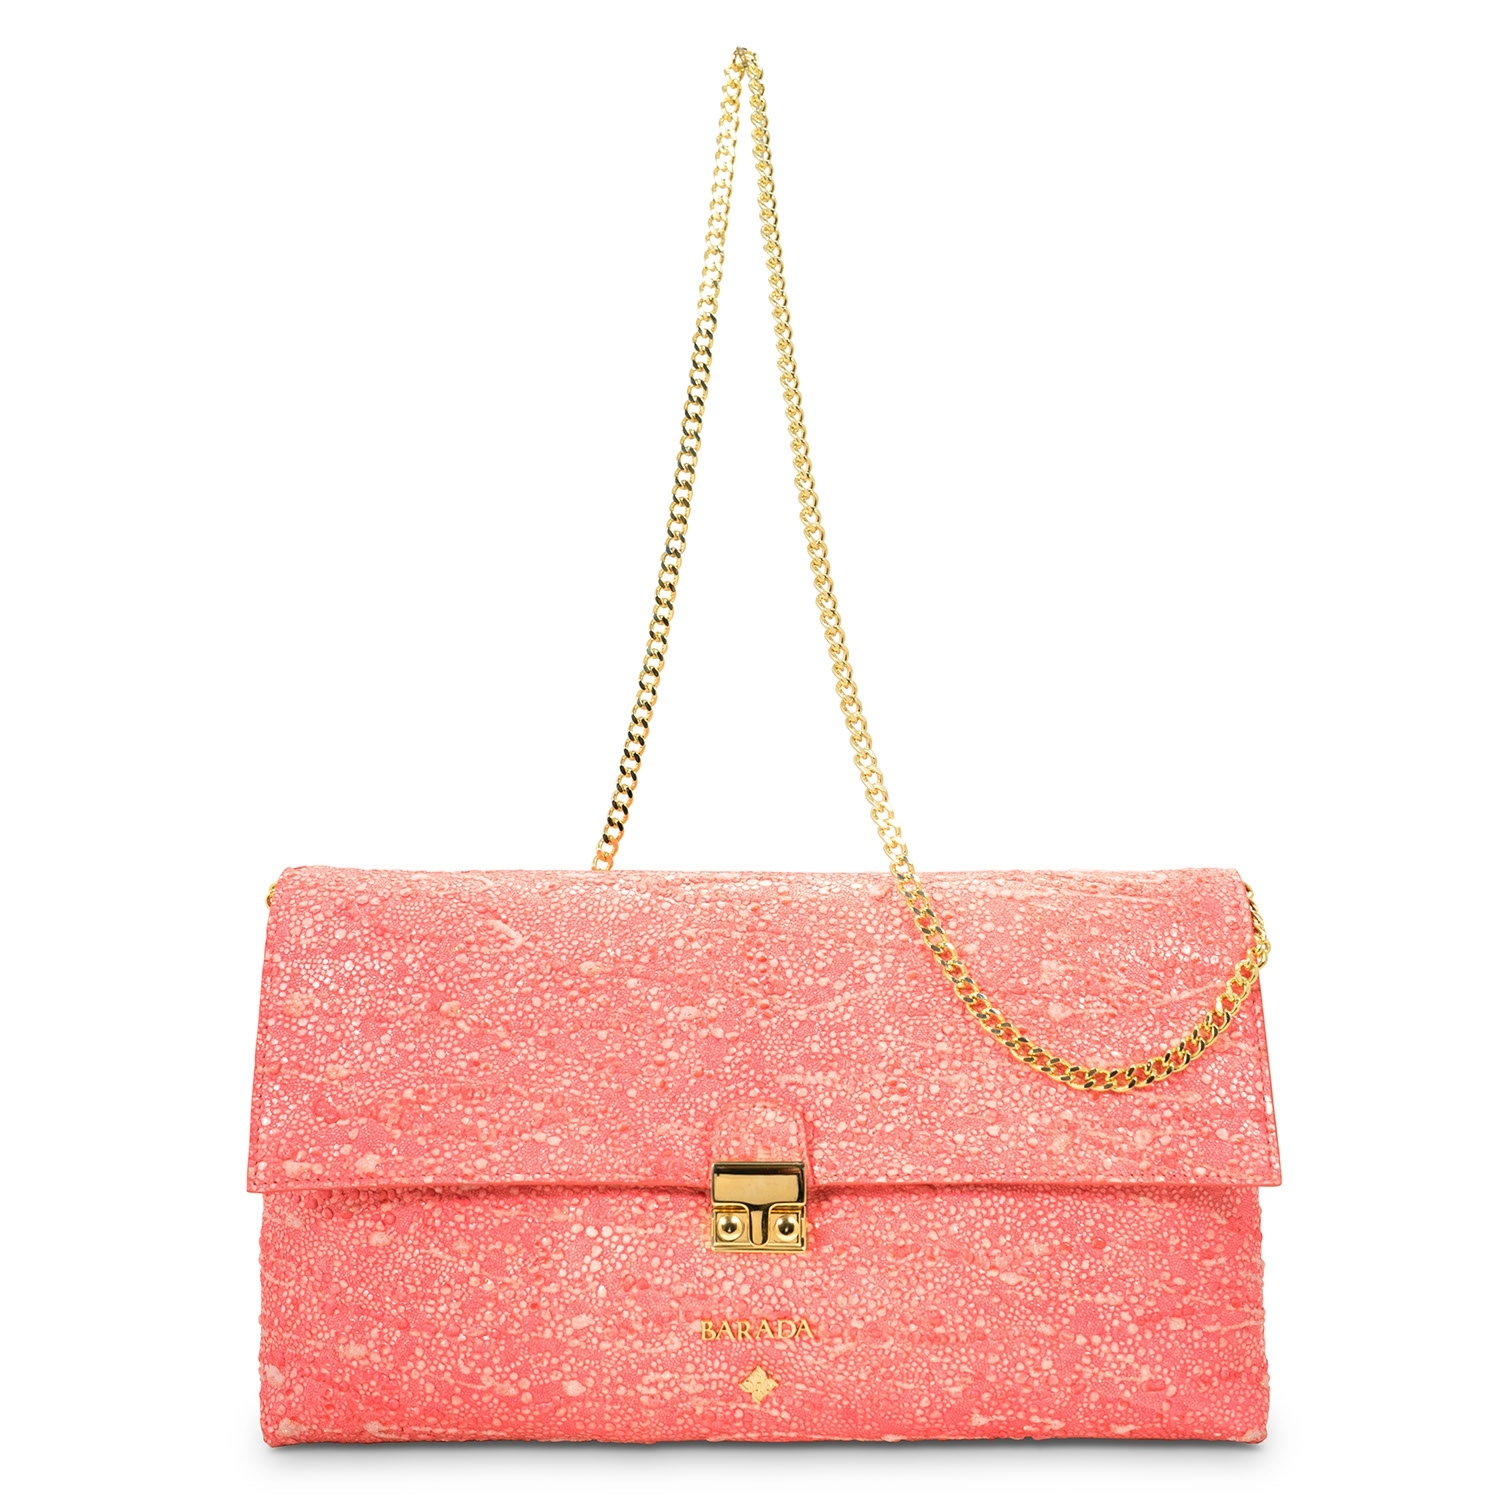 0a0555f1d794 Clutch Handbag from our Dama Blanca collection in Lamb Skin and Salmon color.  Loading zoom